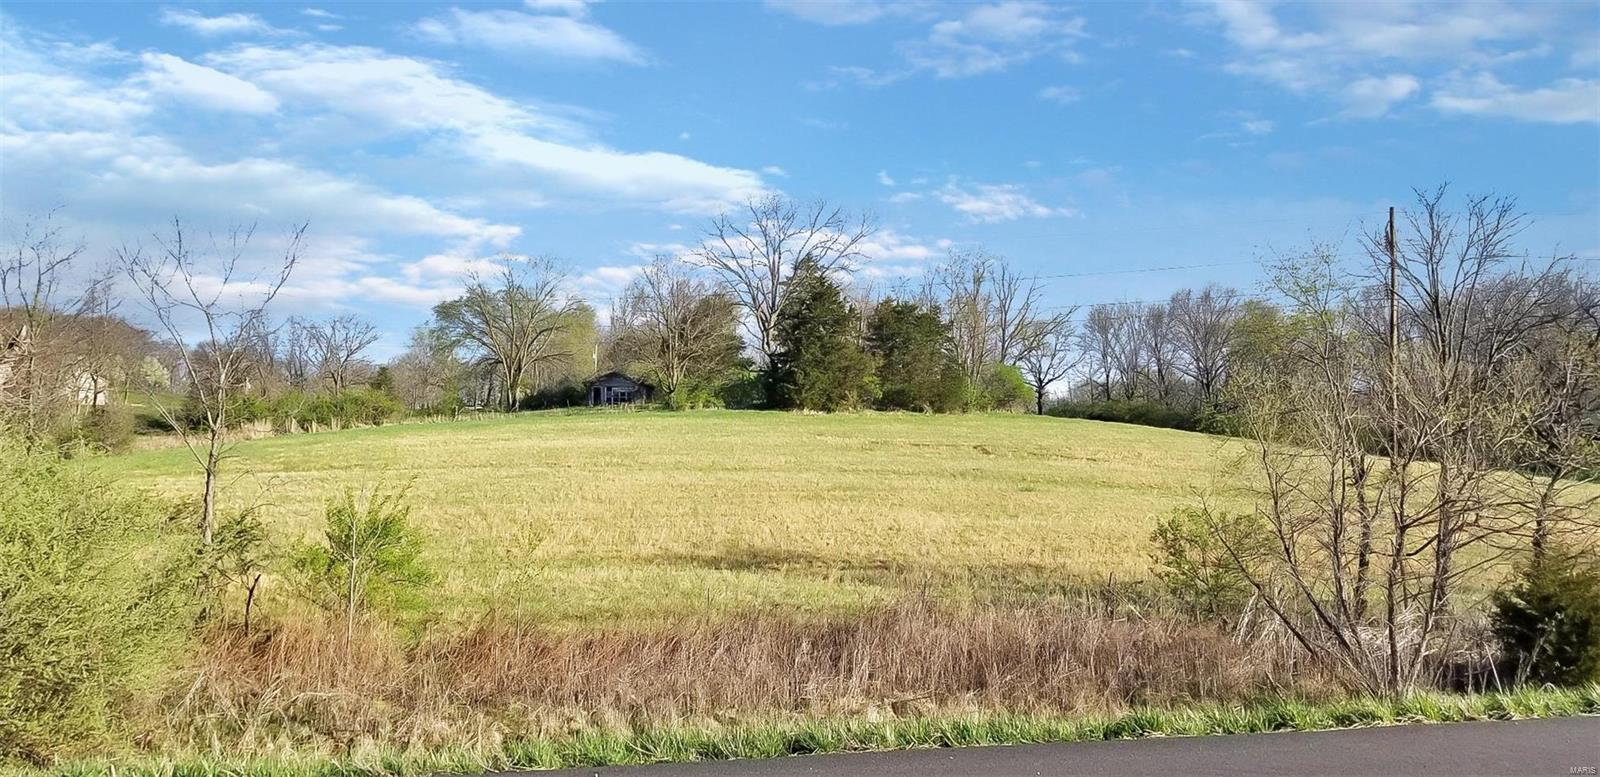 16928 Hwy 54 (9.161+/- acres) Property Photo - Bowling Green, MO real estate listing